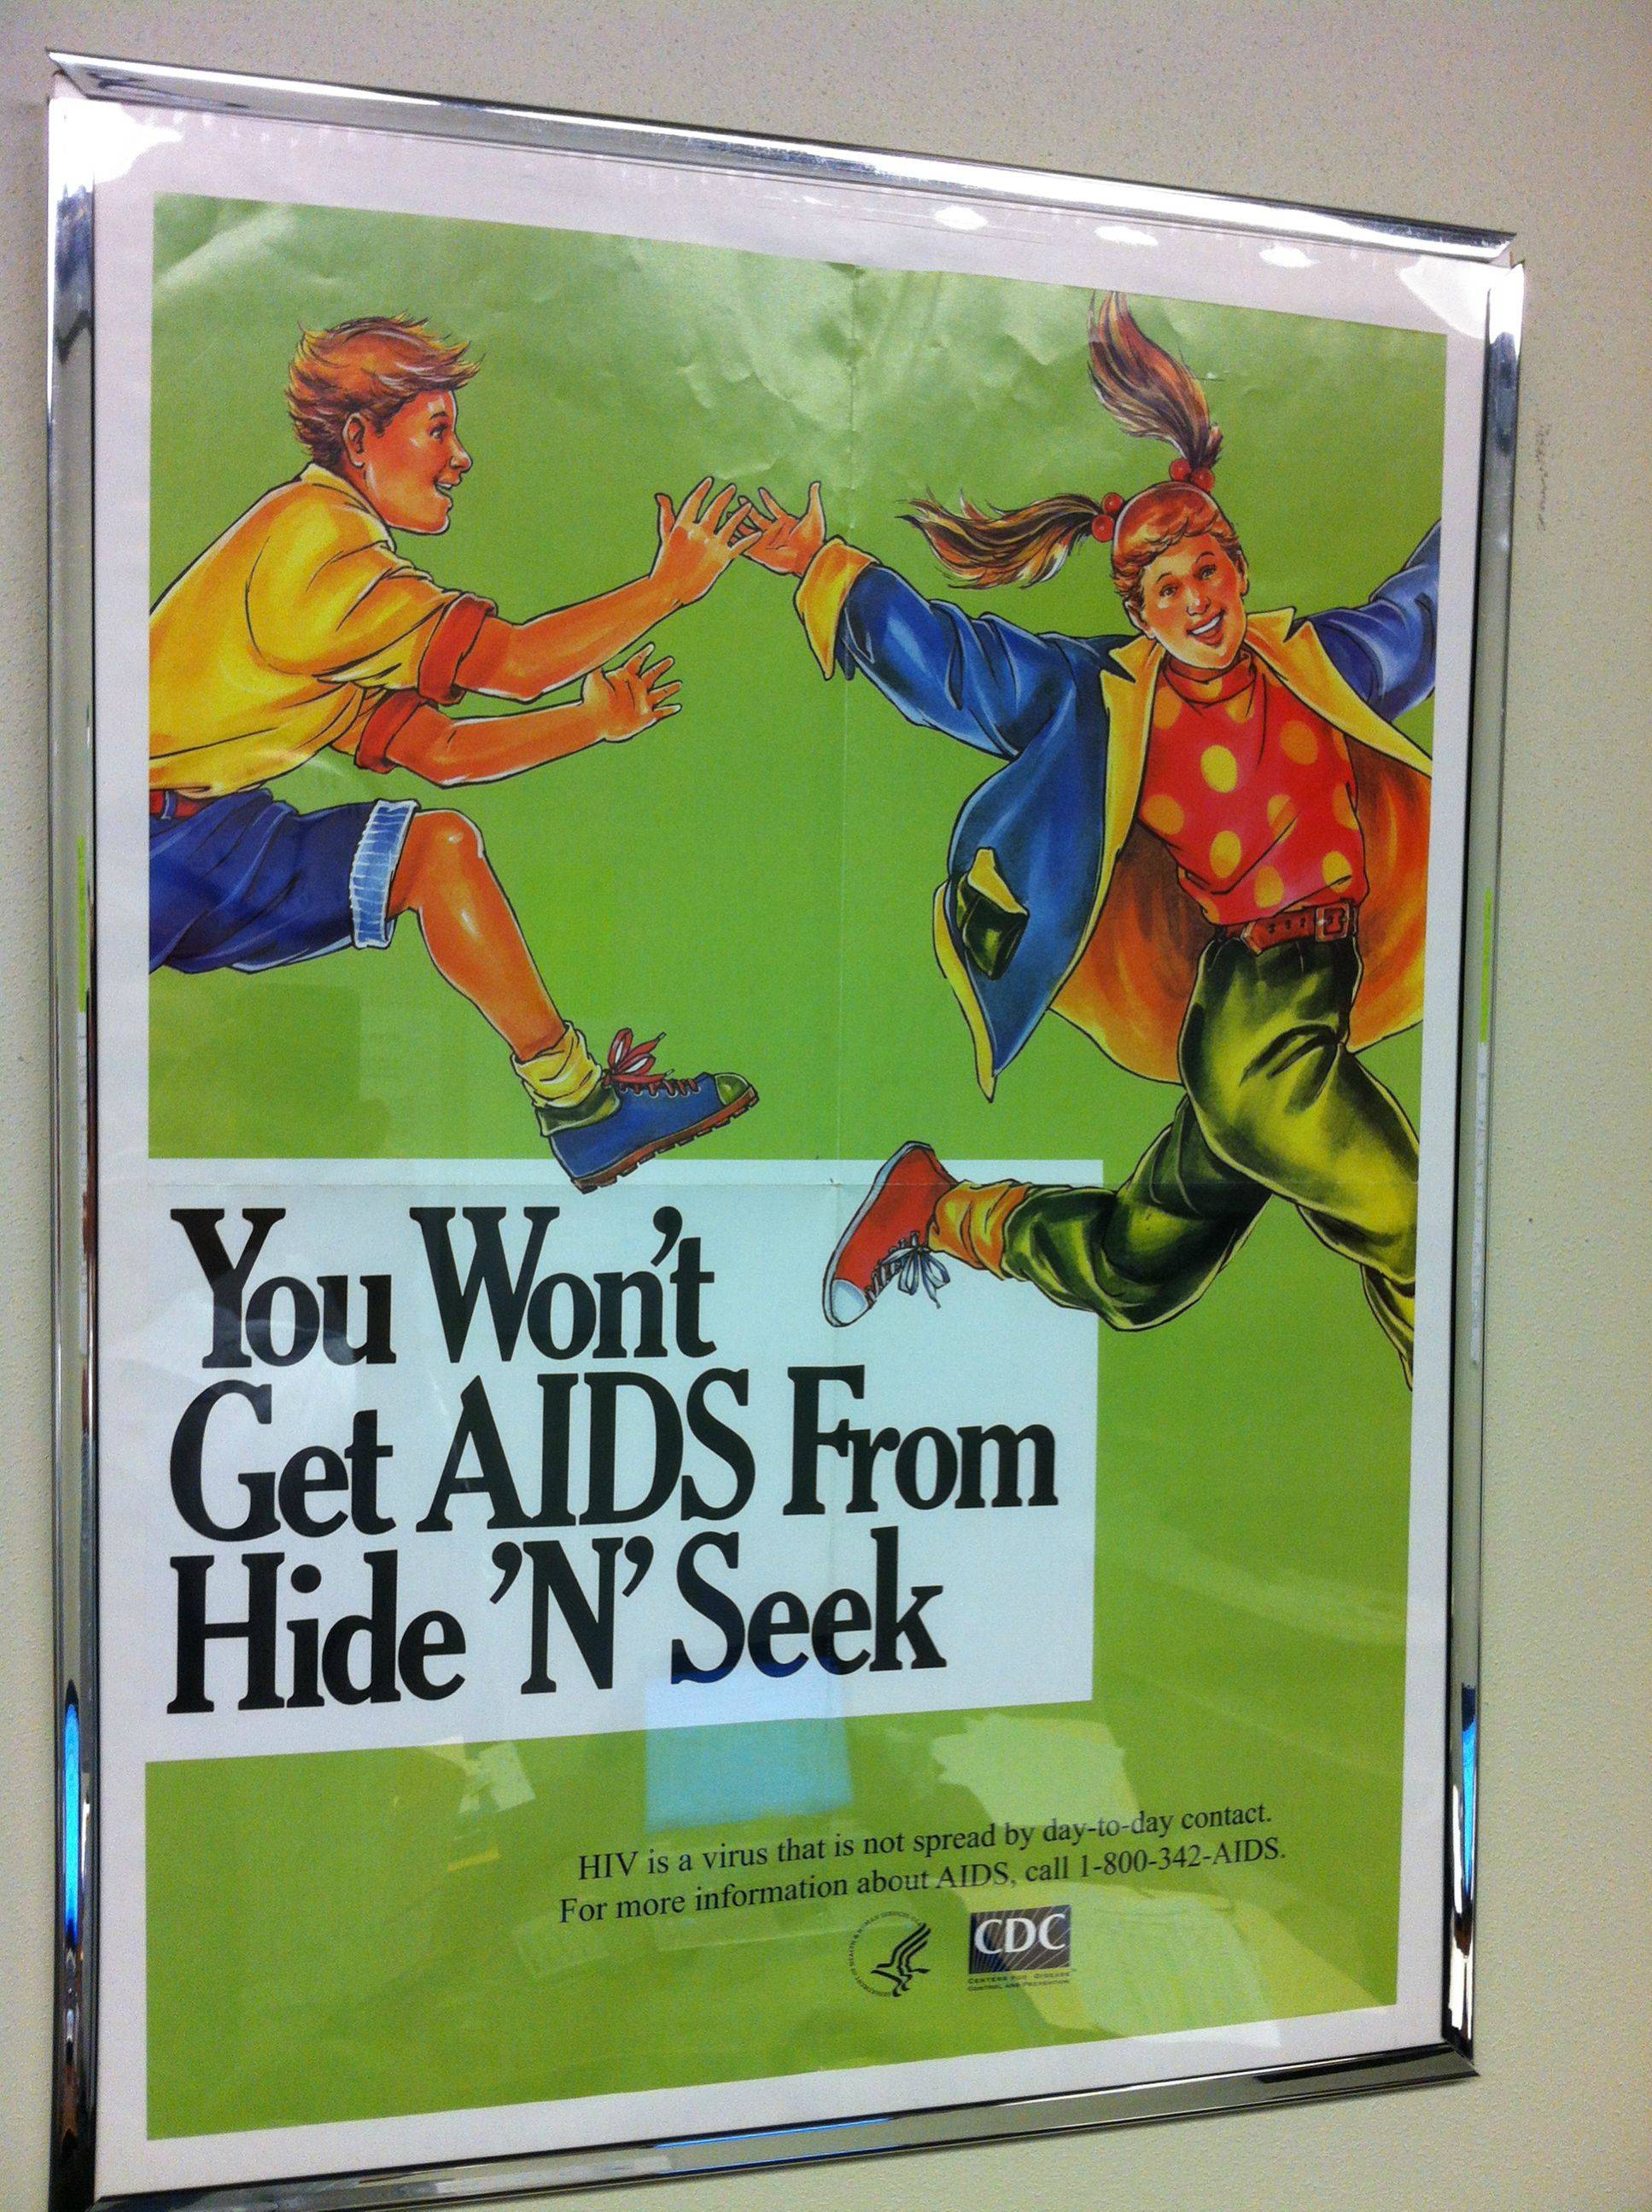 Bizarre poster debunks one of the lesser-known myths about sexually transmitted disease.